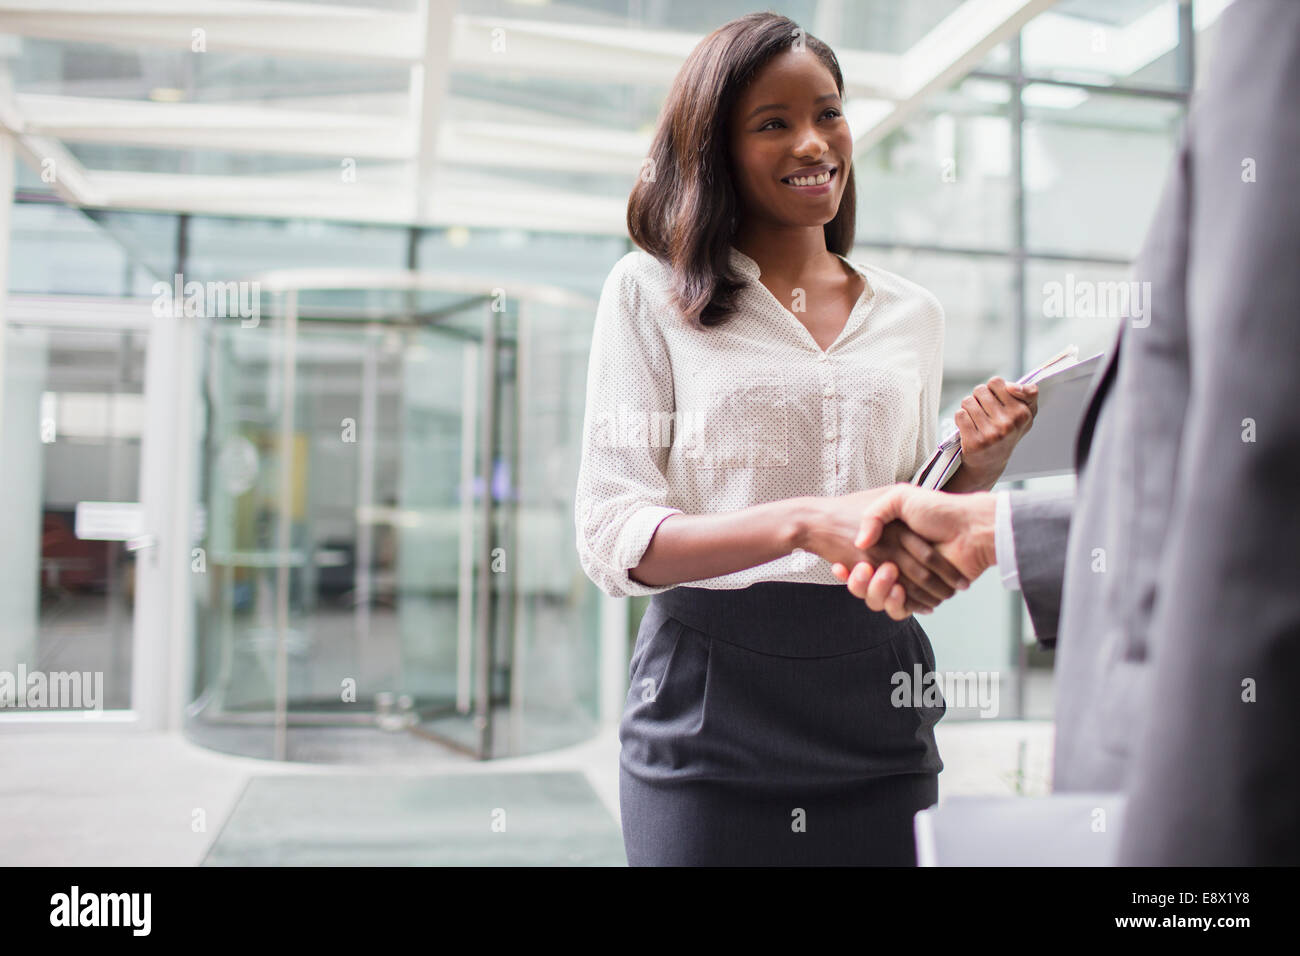 Business people shaking hands outside of office building - Stock Image